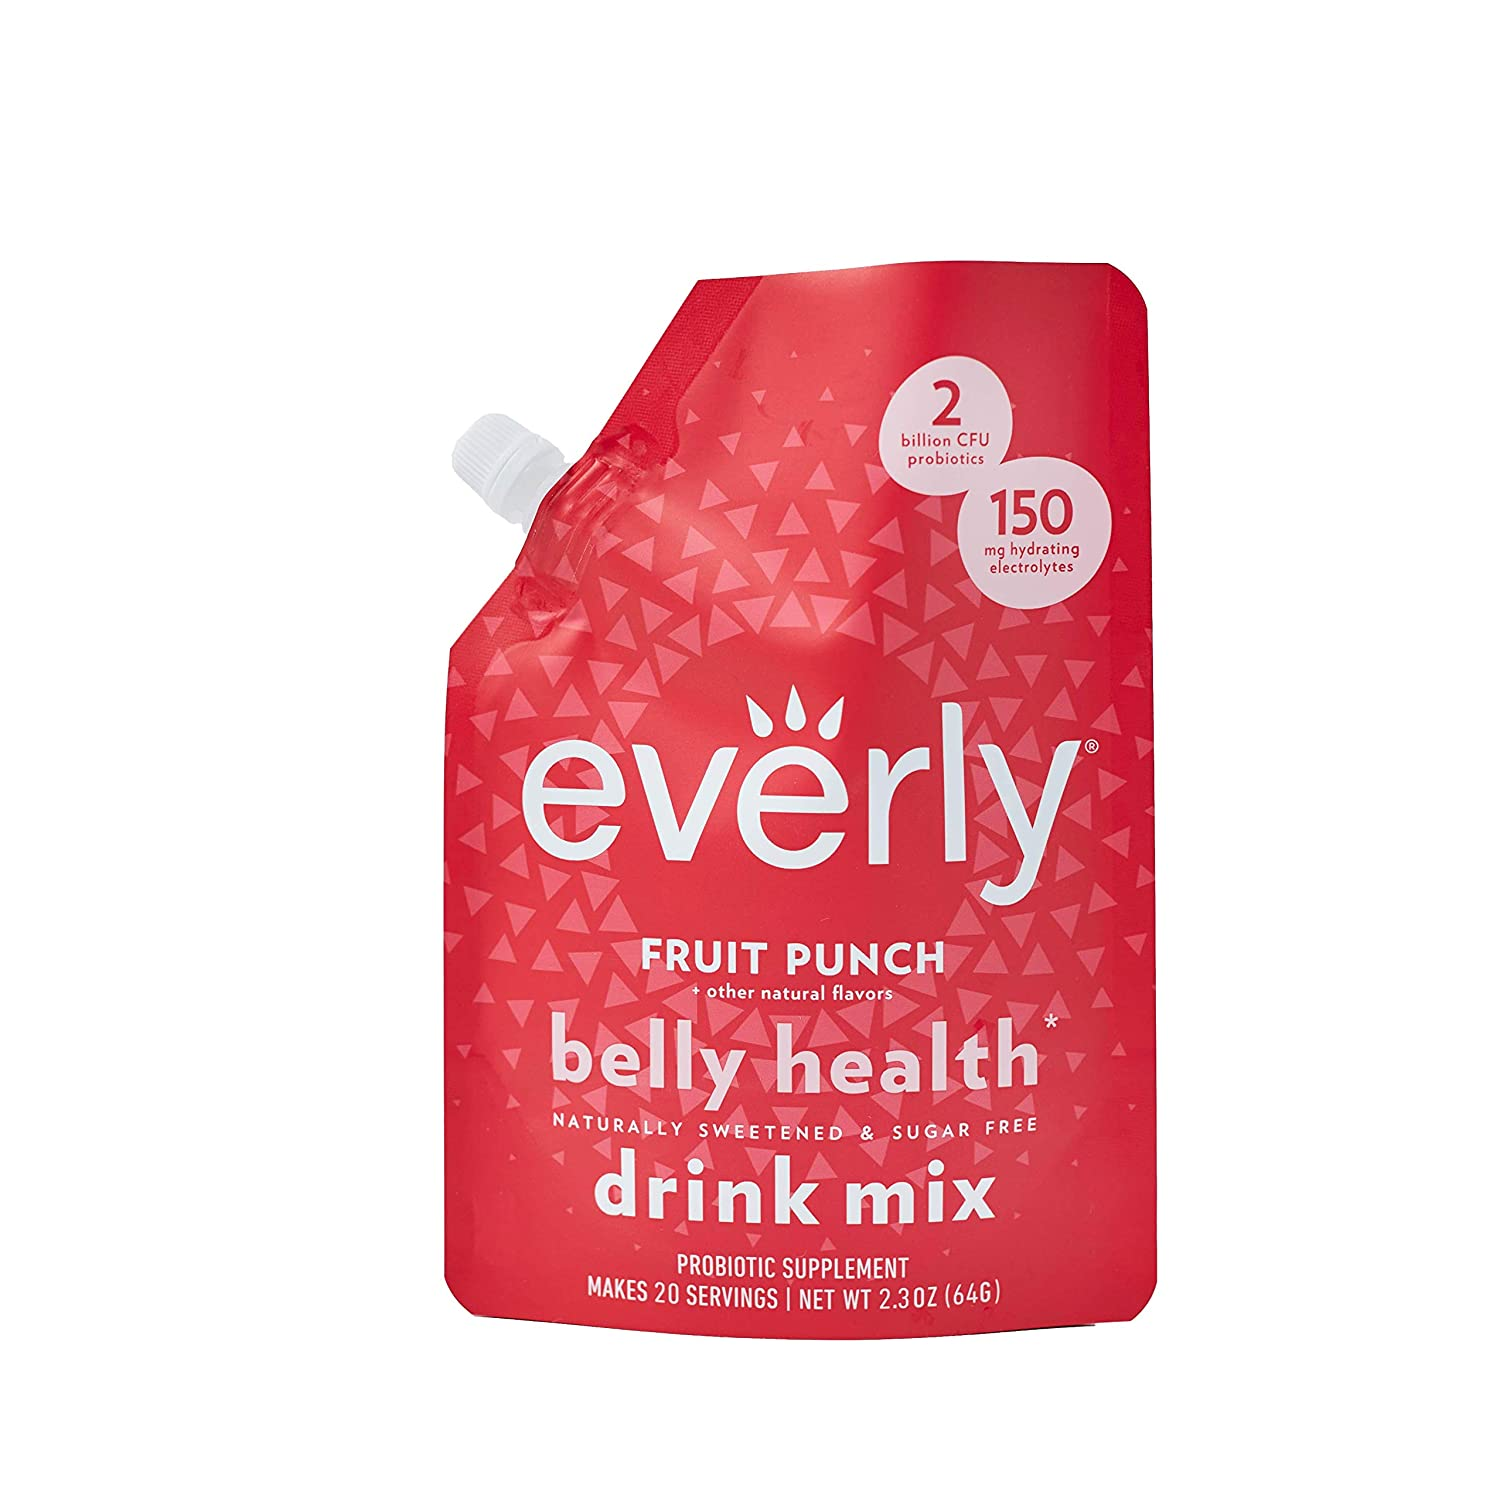 Everly Belly Health - Probiotic Supplement, Sugar Free, Natural Sweeteners (Stevia & Organic Erythritol), No Calories, Water Flavoring & Water Enhancer – Pouch, 20 servings (Fruit Punch)